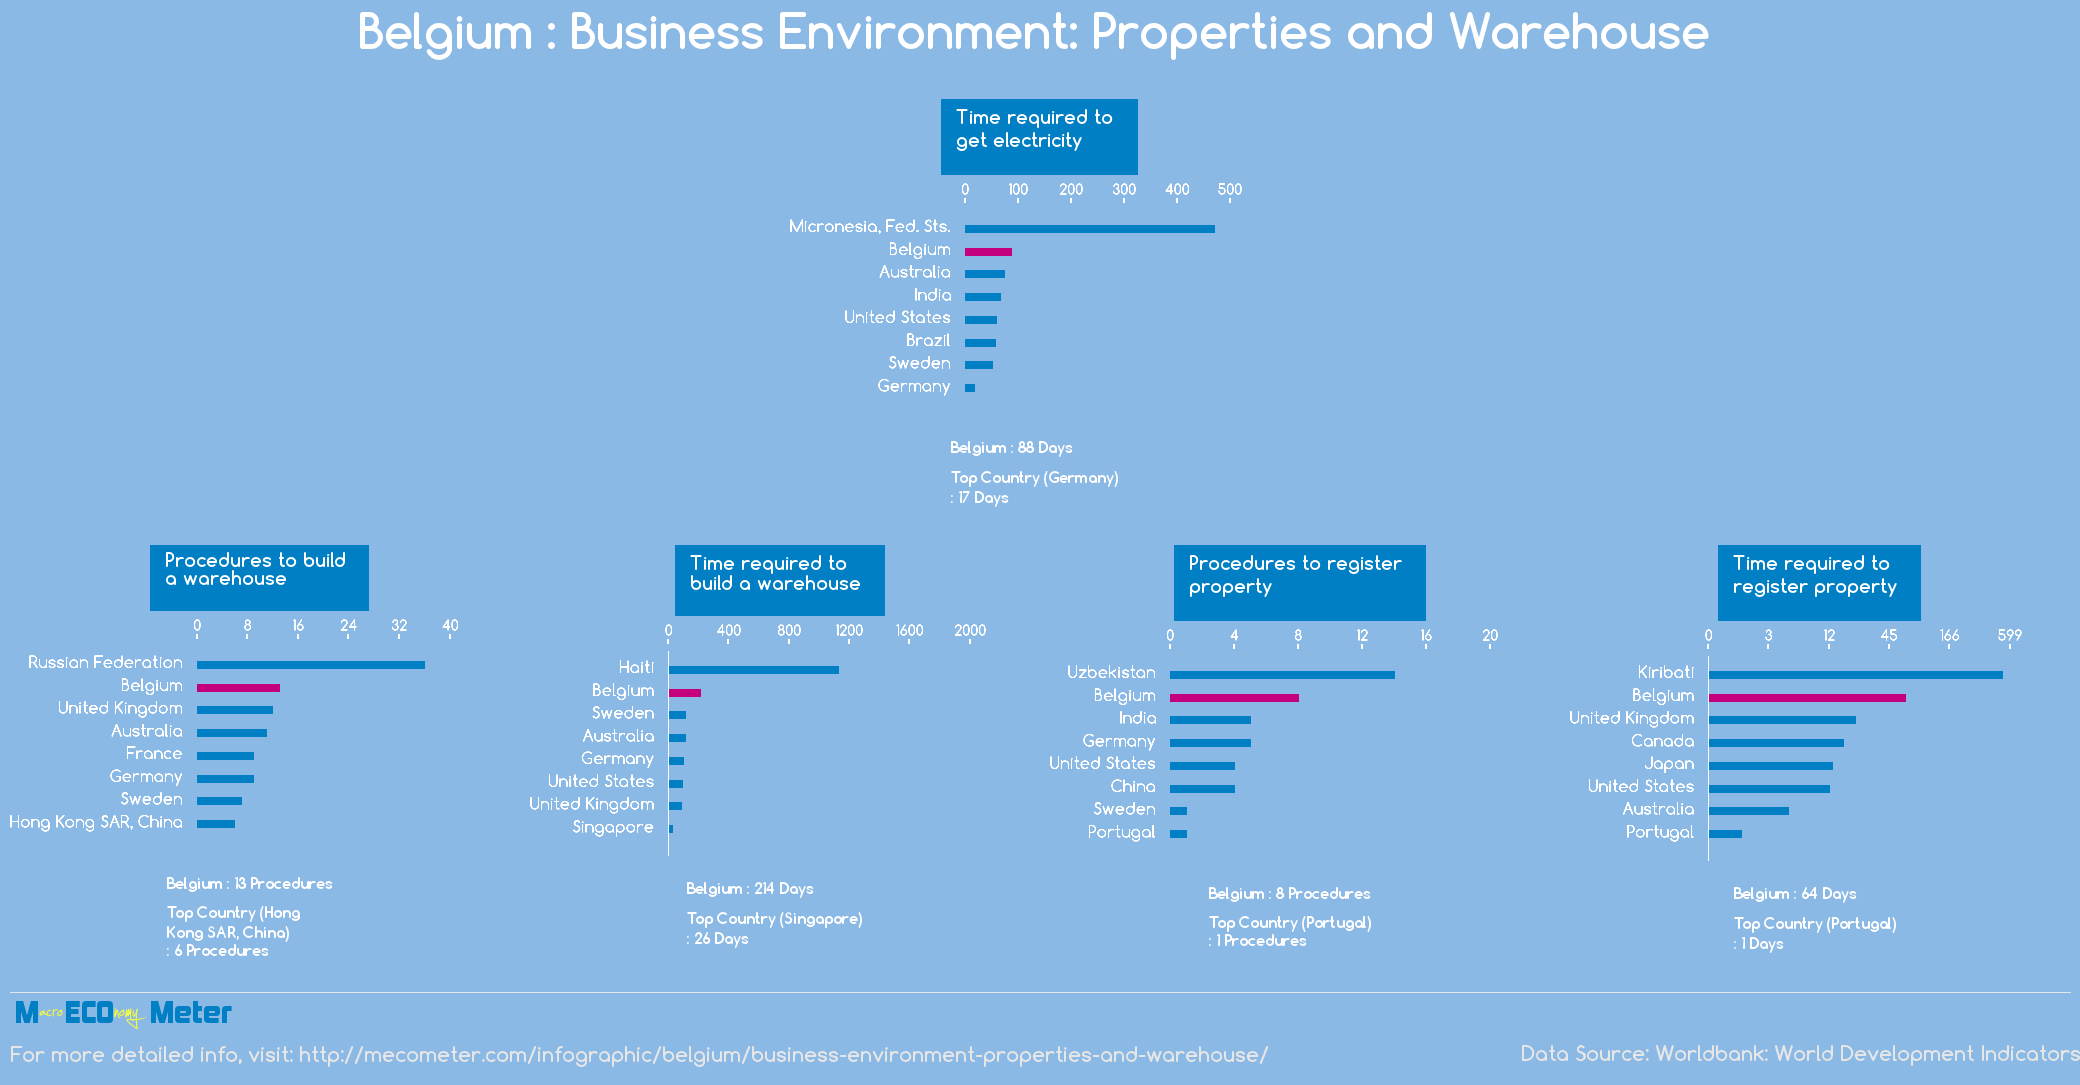 Belgium : Business Environment: Properties and Warehouse